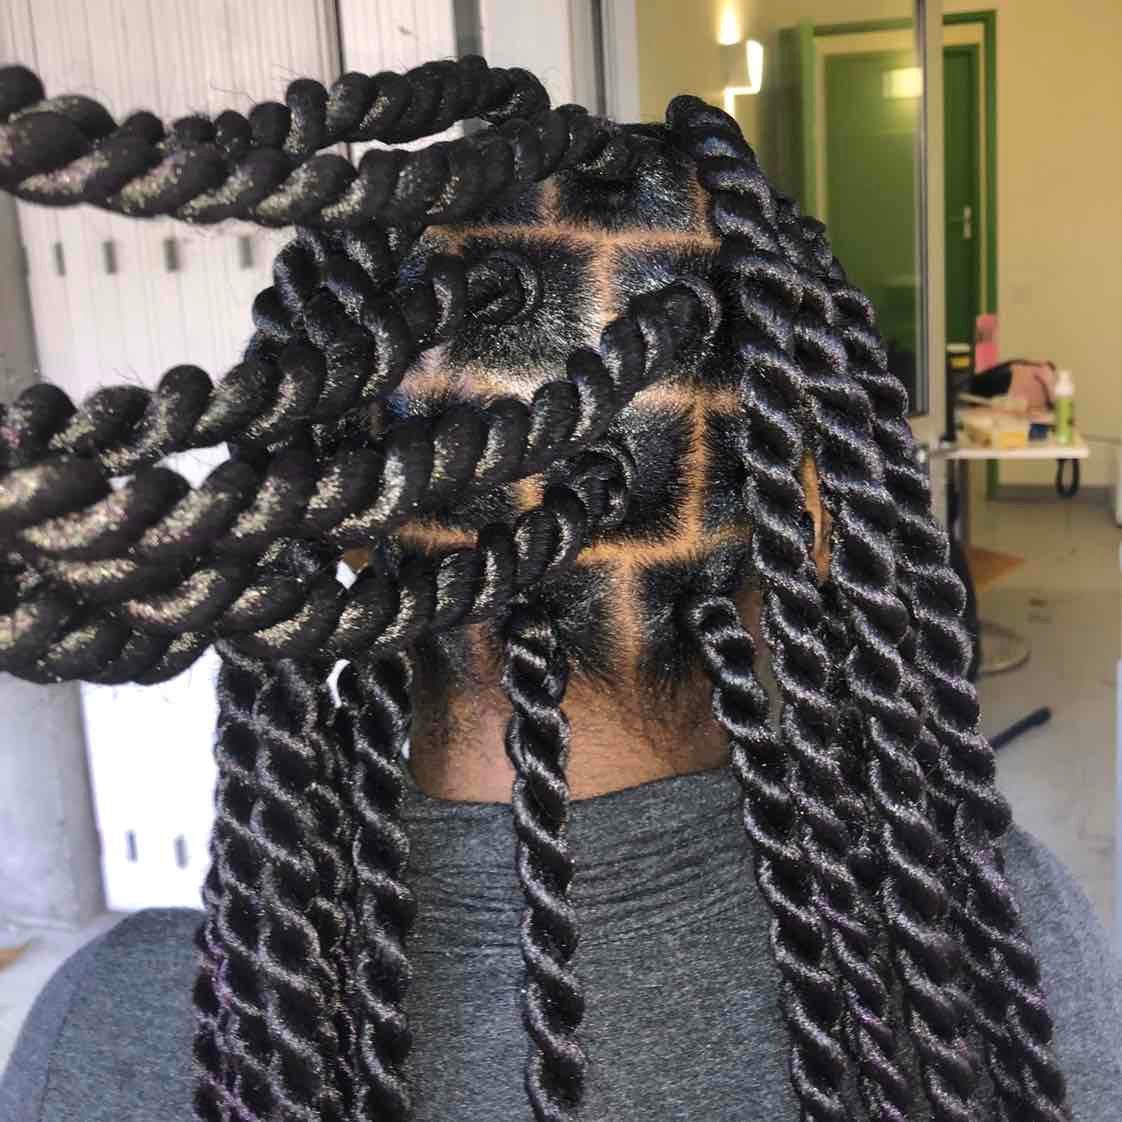 salon de coiffure afro tresse tresses box braids crochet braids vanilles tissages paris 75 77 78 91 92 93 94 95 DRFABNUO